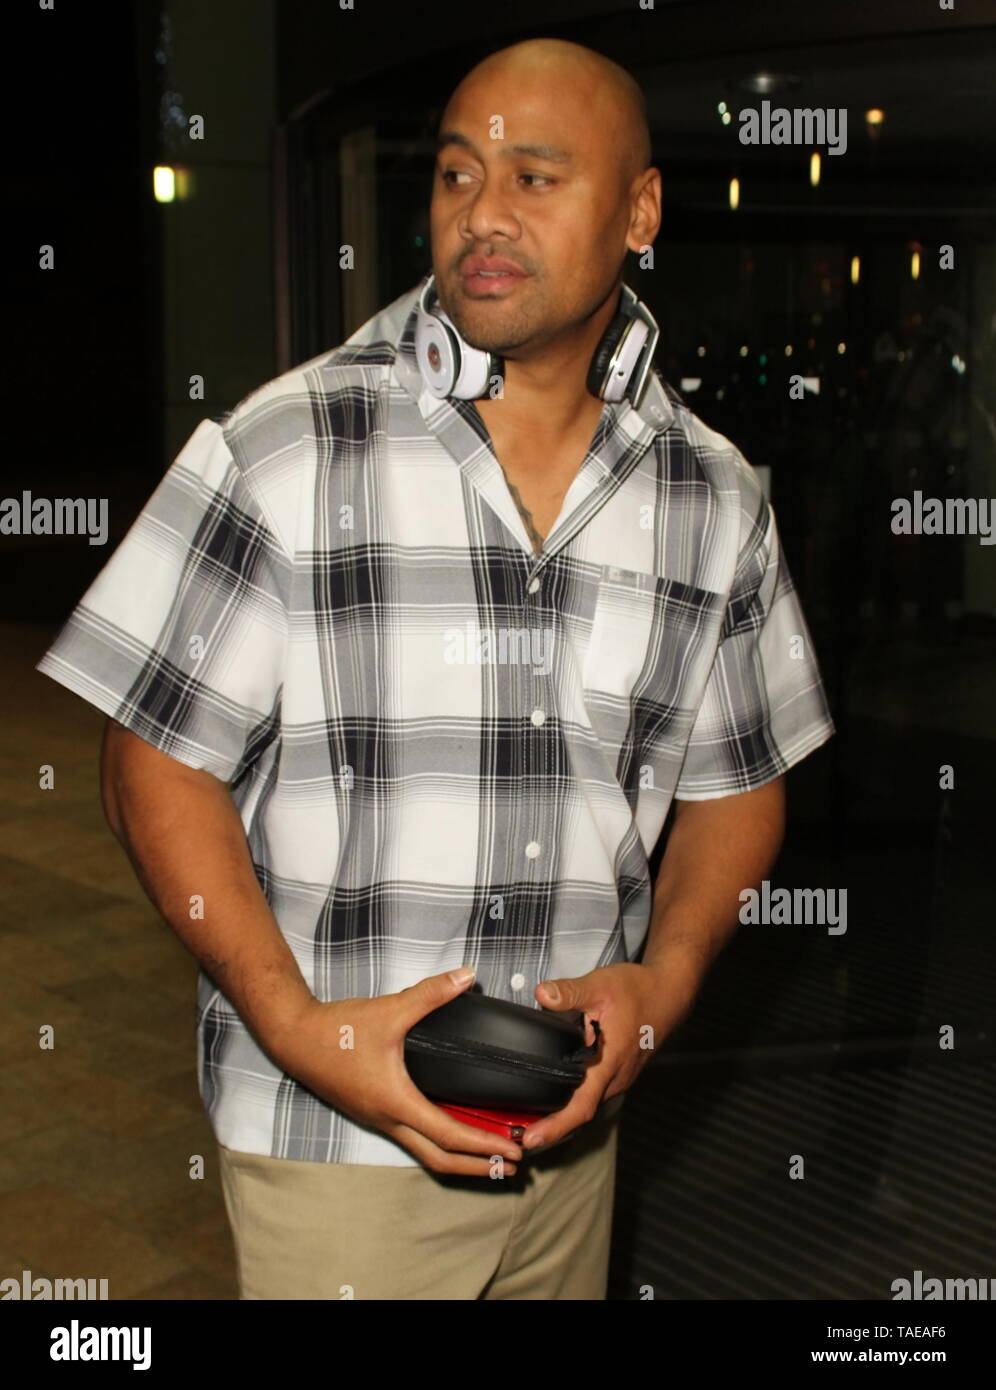 Liverpool,Uk Jonah Lomu spotted in the city credit Ian Fairbrother/Alamy Stock Photos - Stock Image